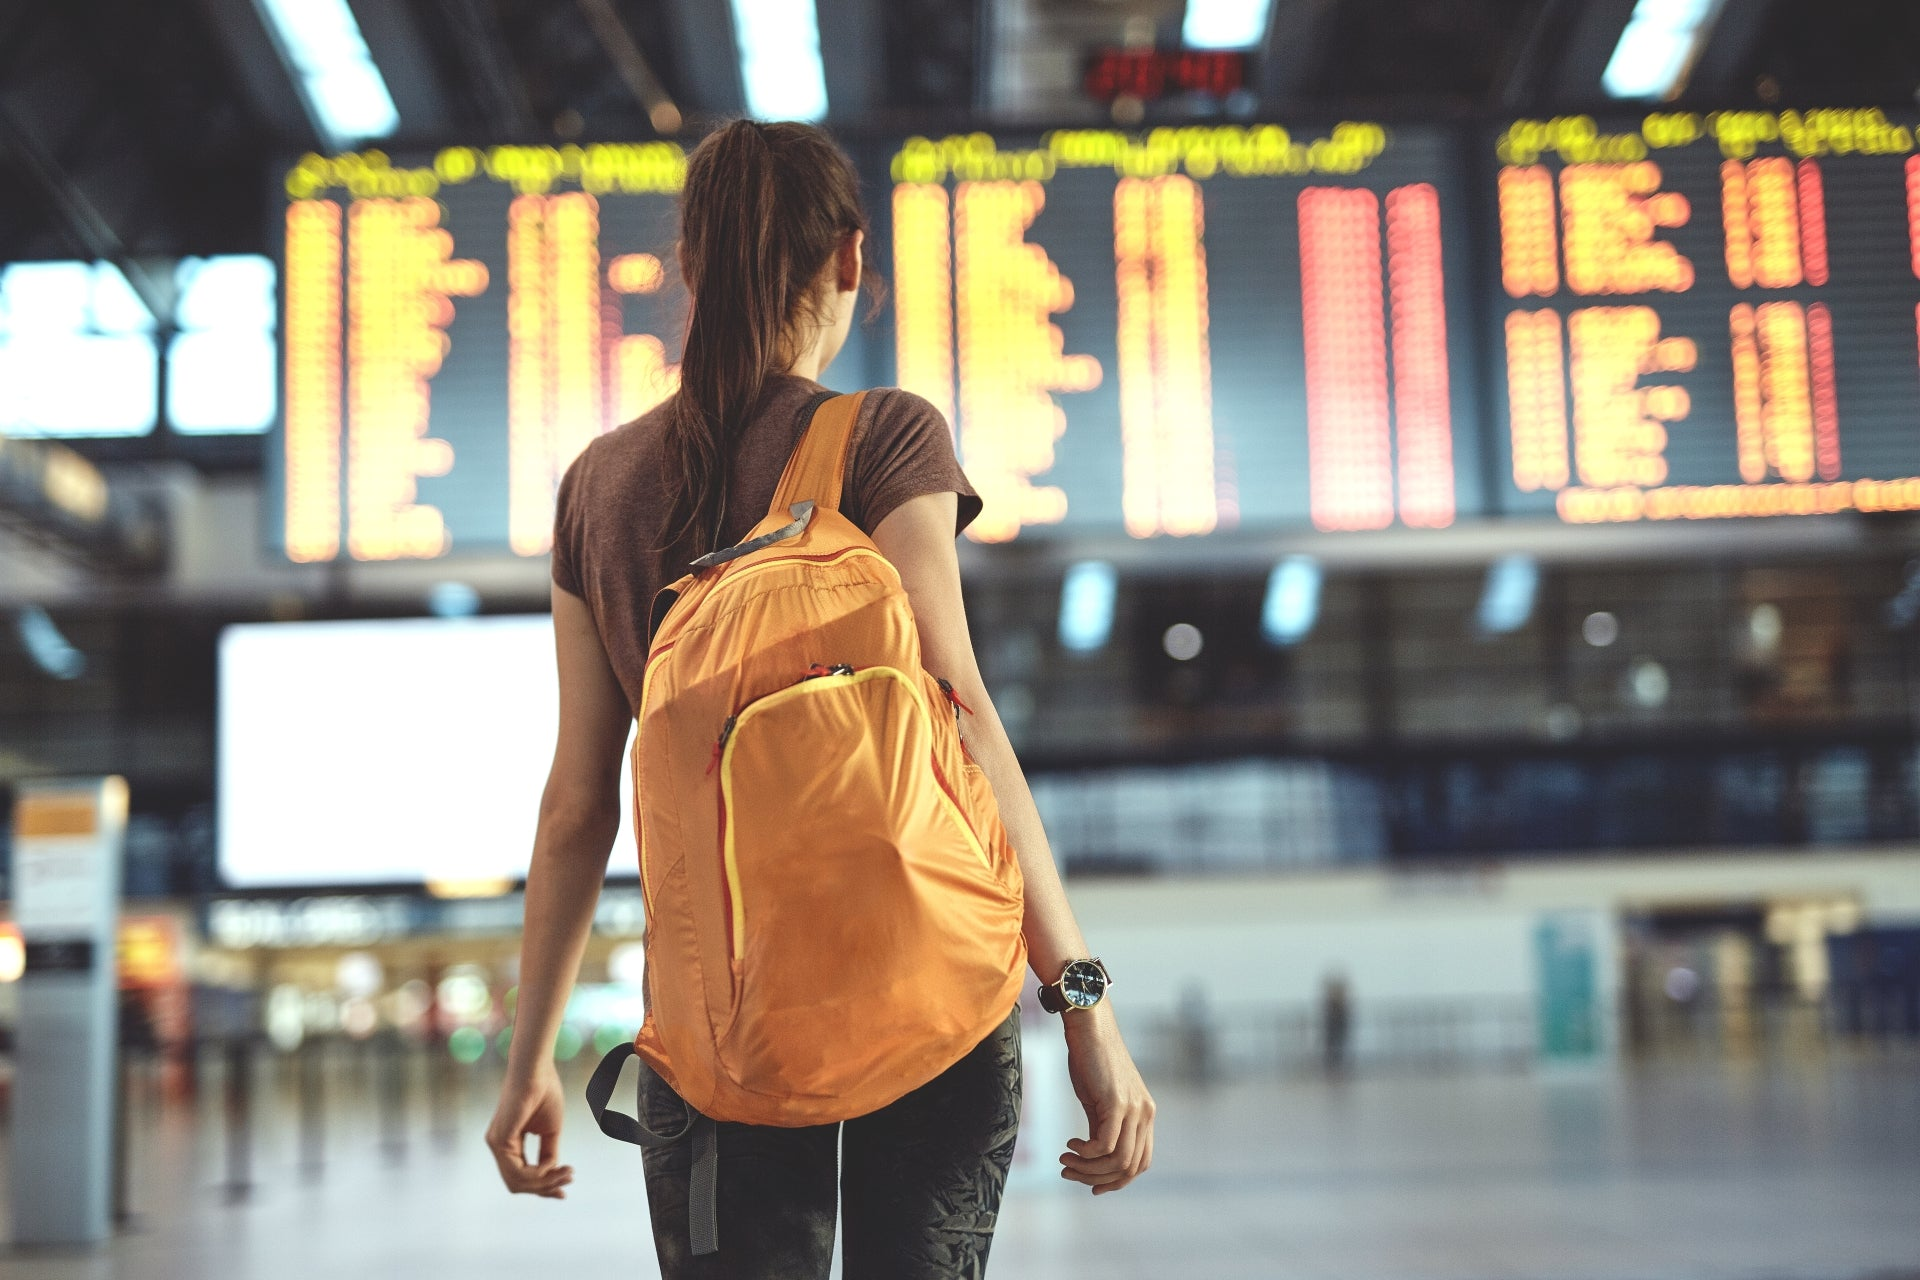 A woman with an orange back pack stands inside an airport wondering can you take a pipe on a plane?